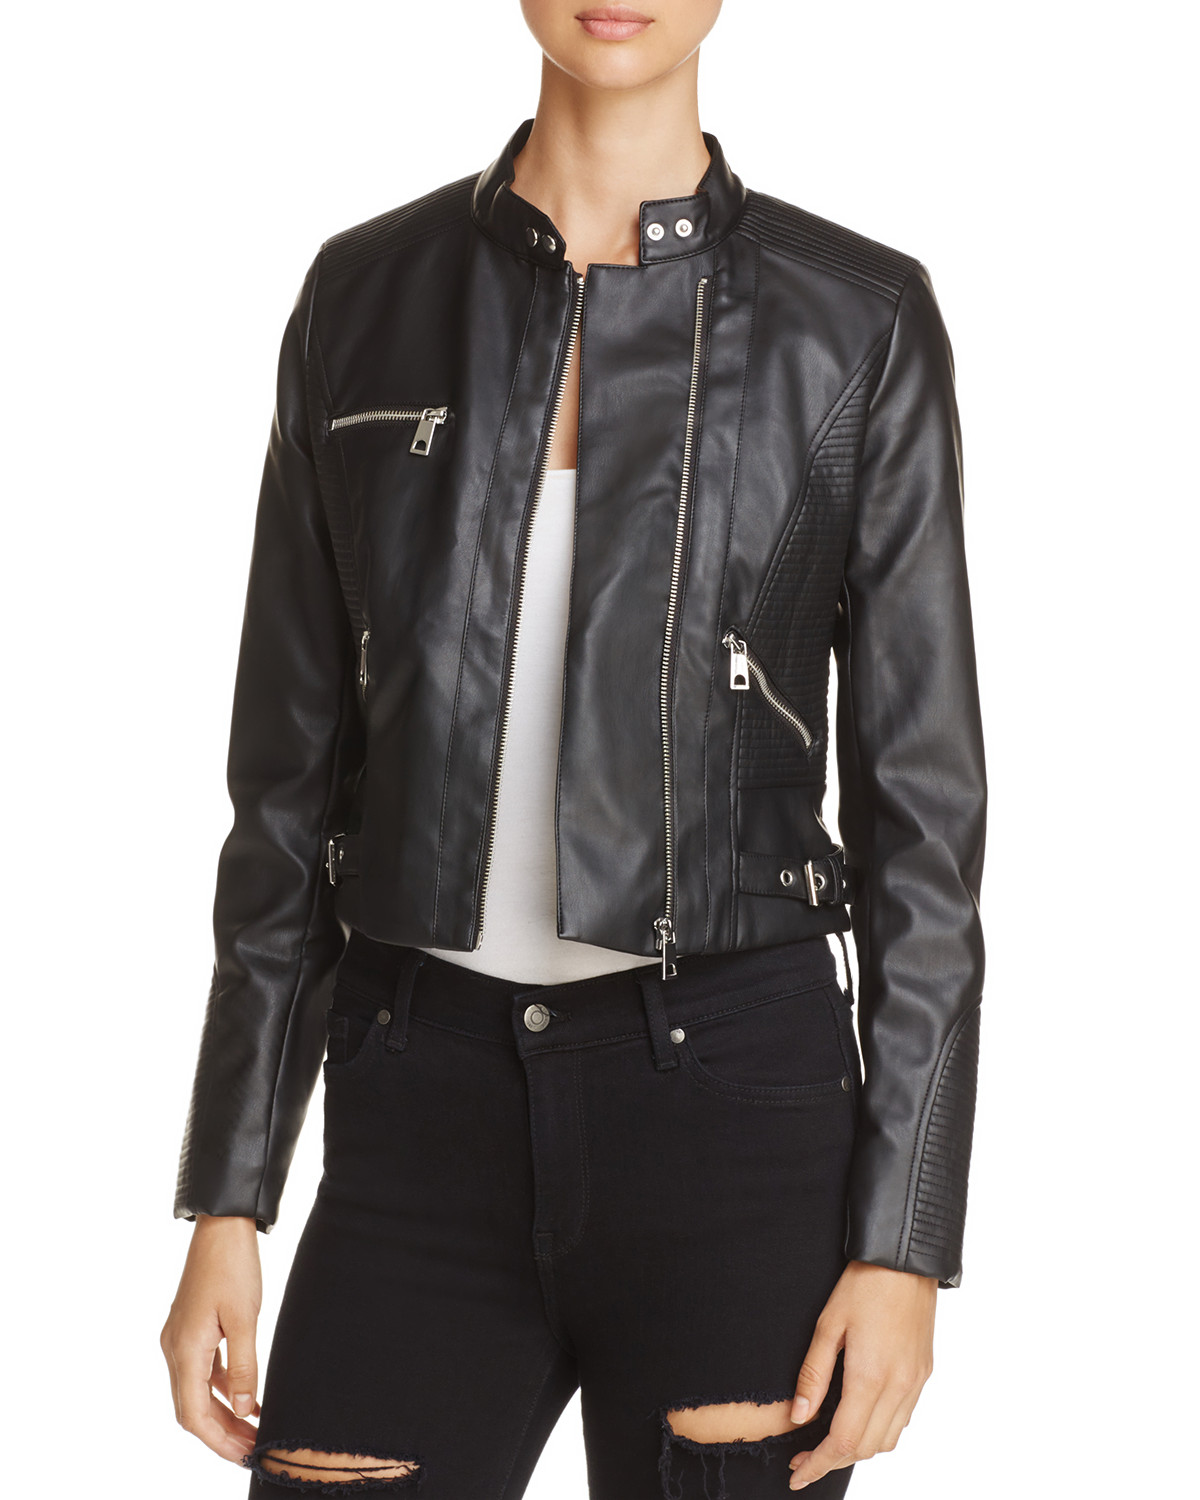 Vero Moda Calandra Faux Leather Moto Jacket from Bloomingdale's // Price: $75 // (Photo courtesy: Bloomingdale's)<p></p>